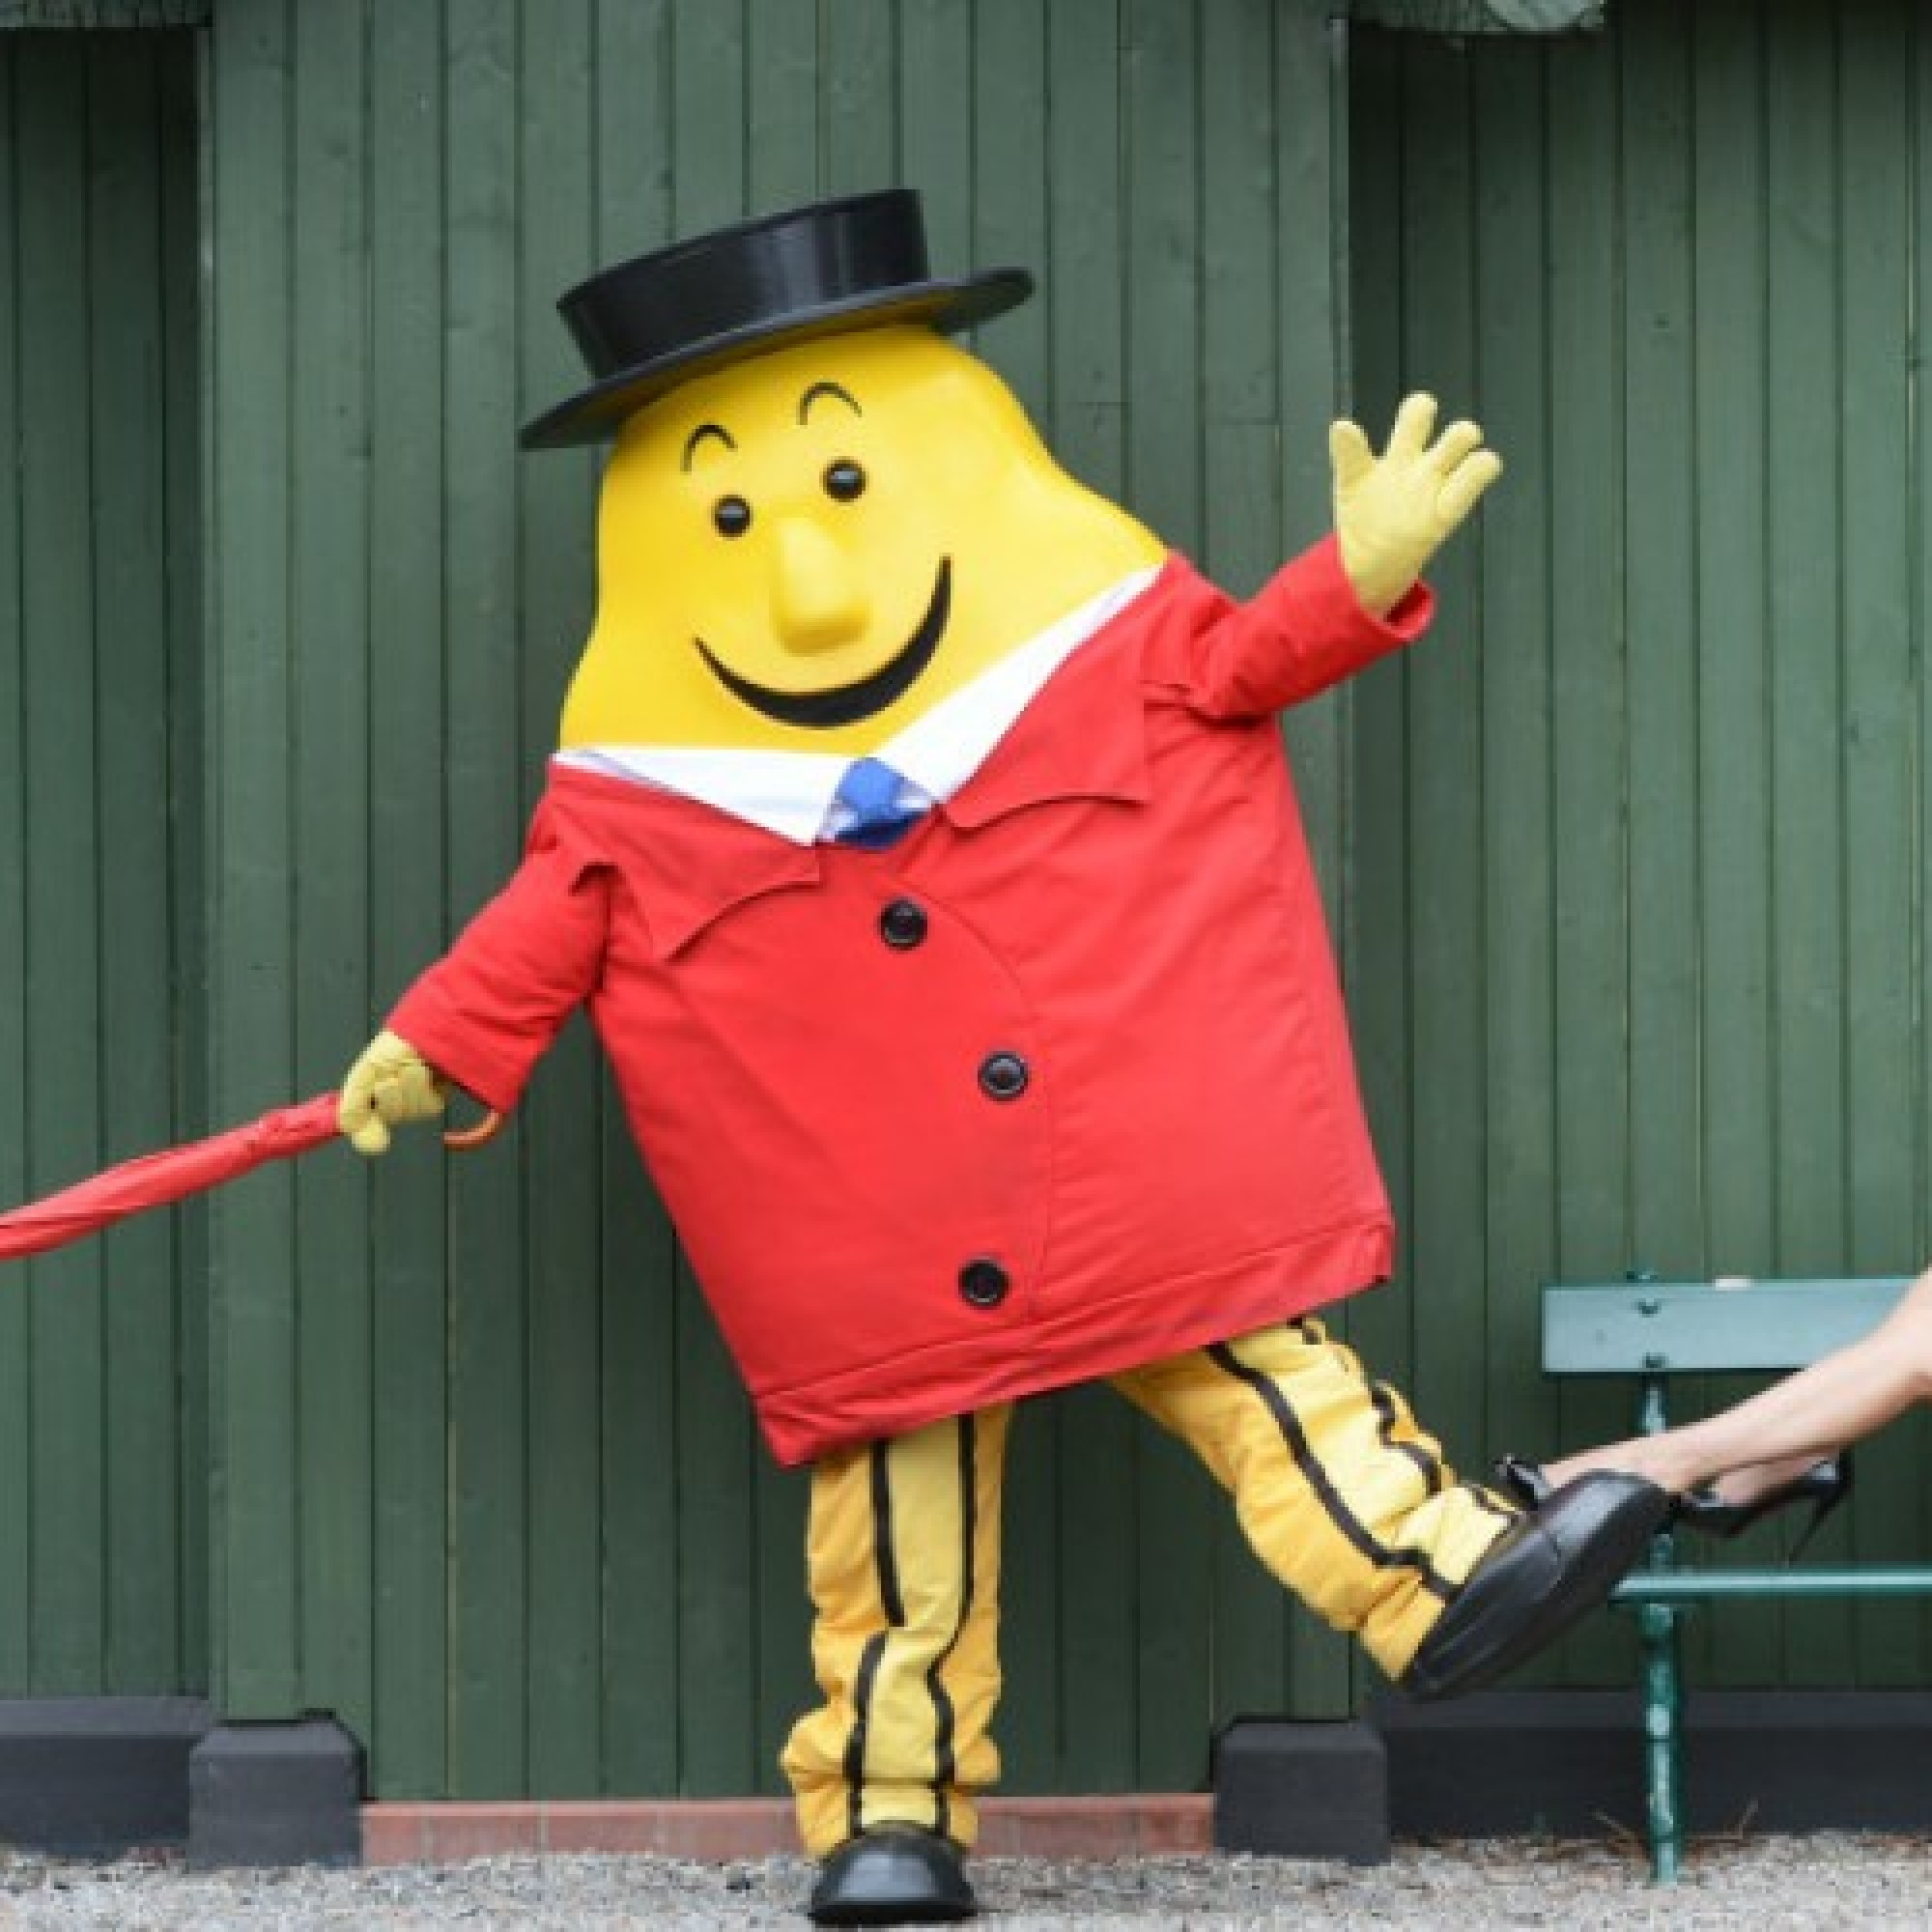 Let's settle this once and for all - Mr Tayto is a potato, not a giant crisp